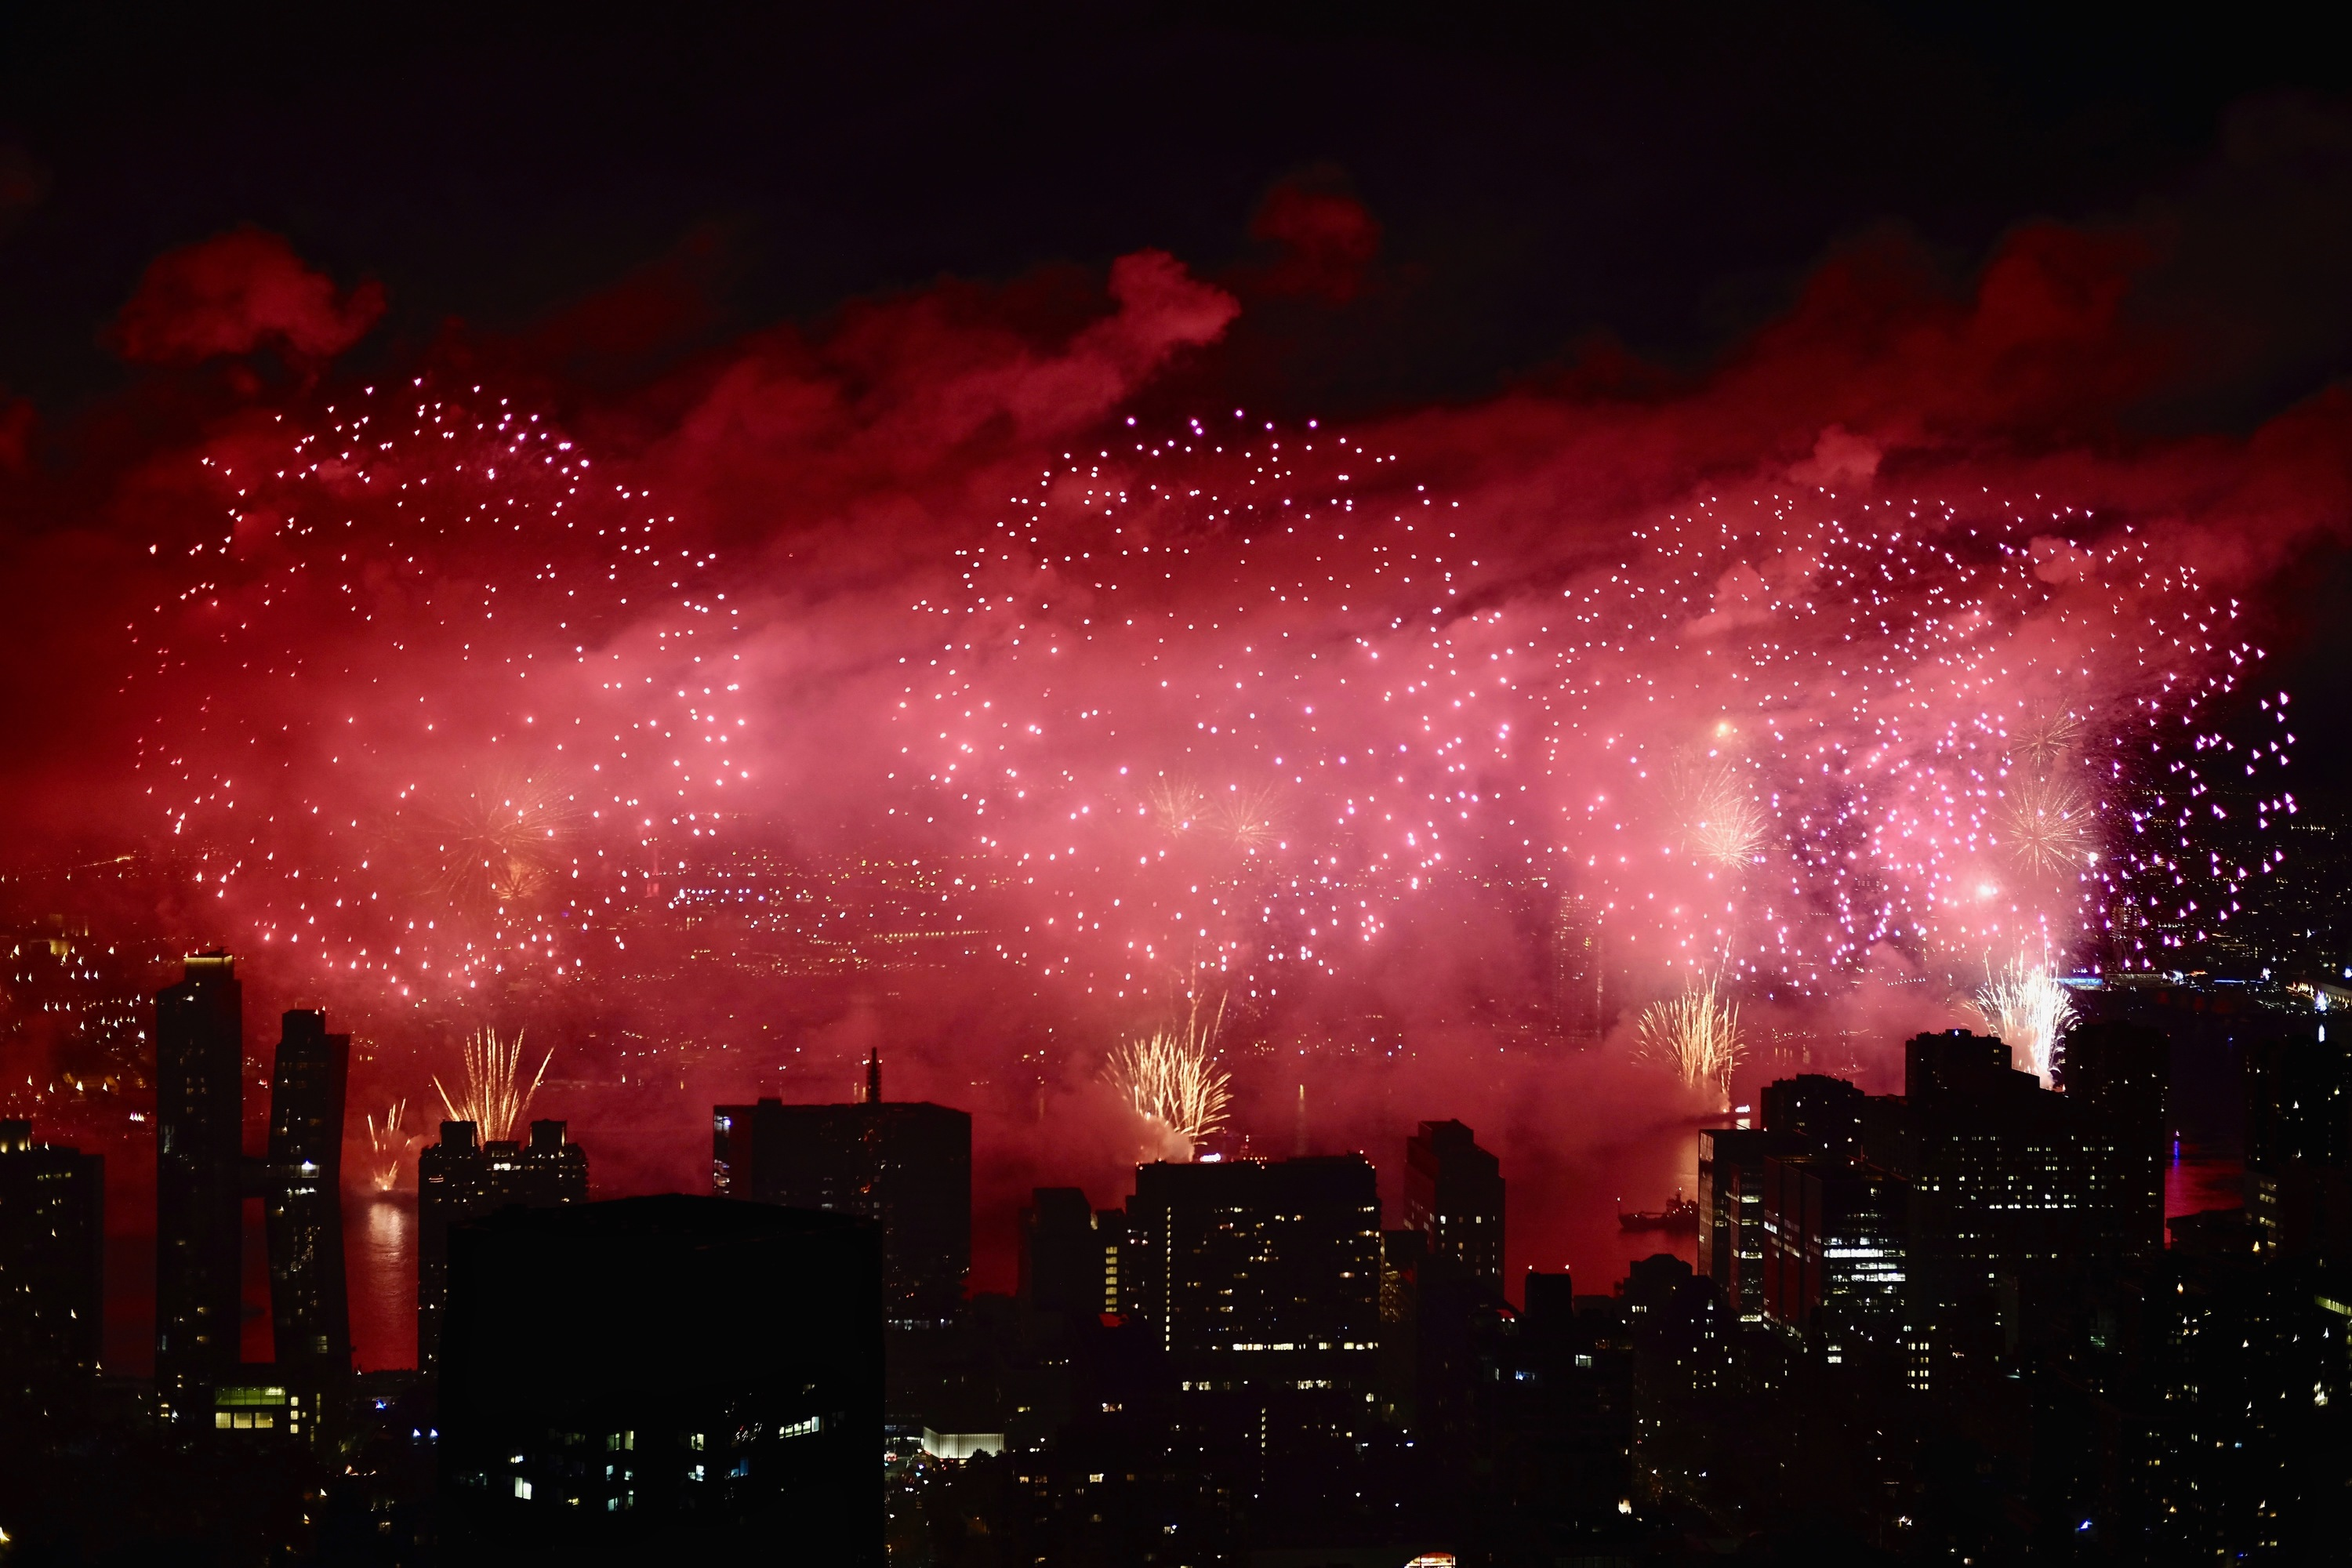 Red fireworks will light up the sky this week for the Lunar New Year